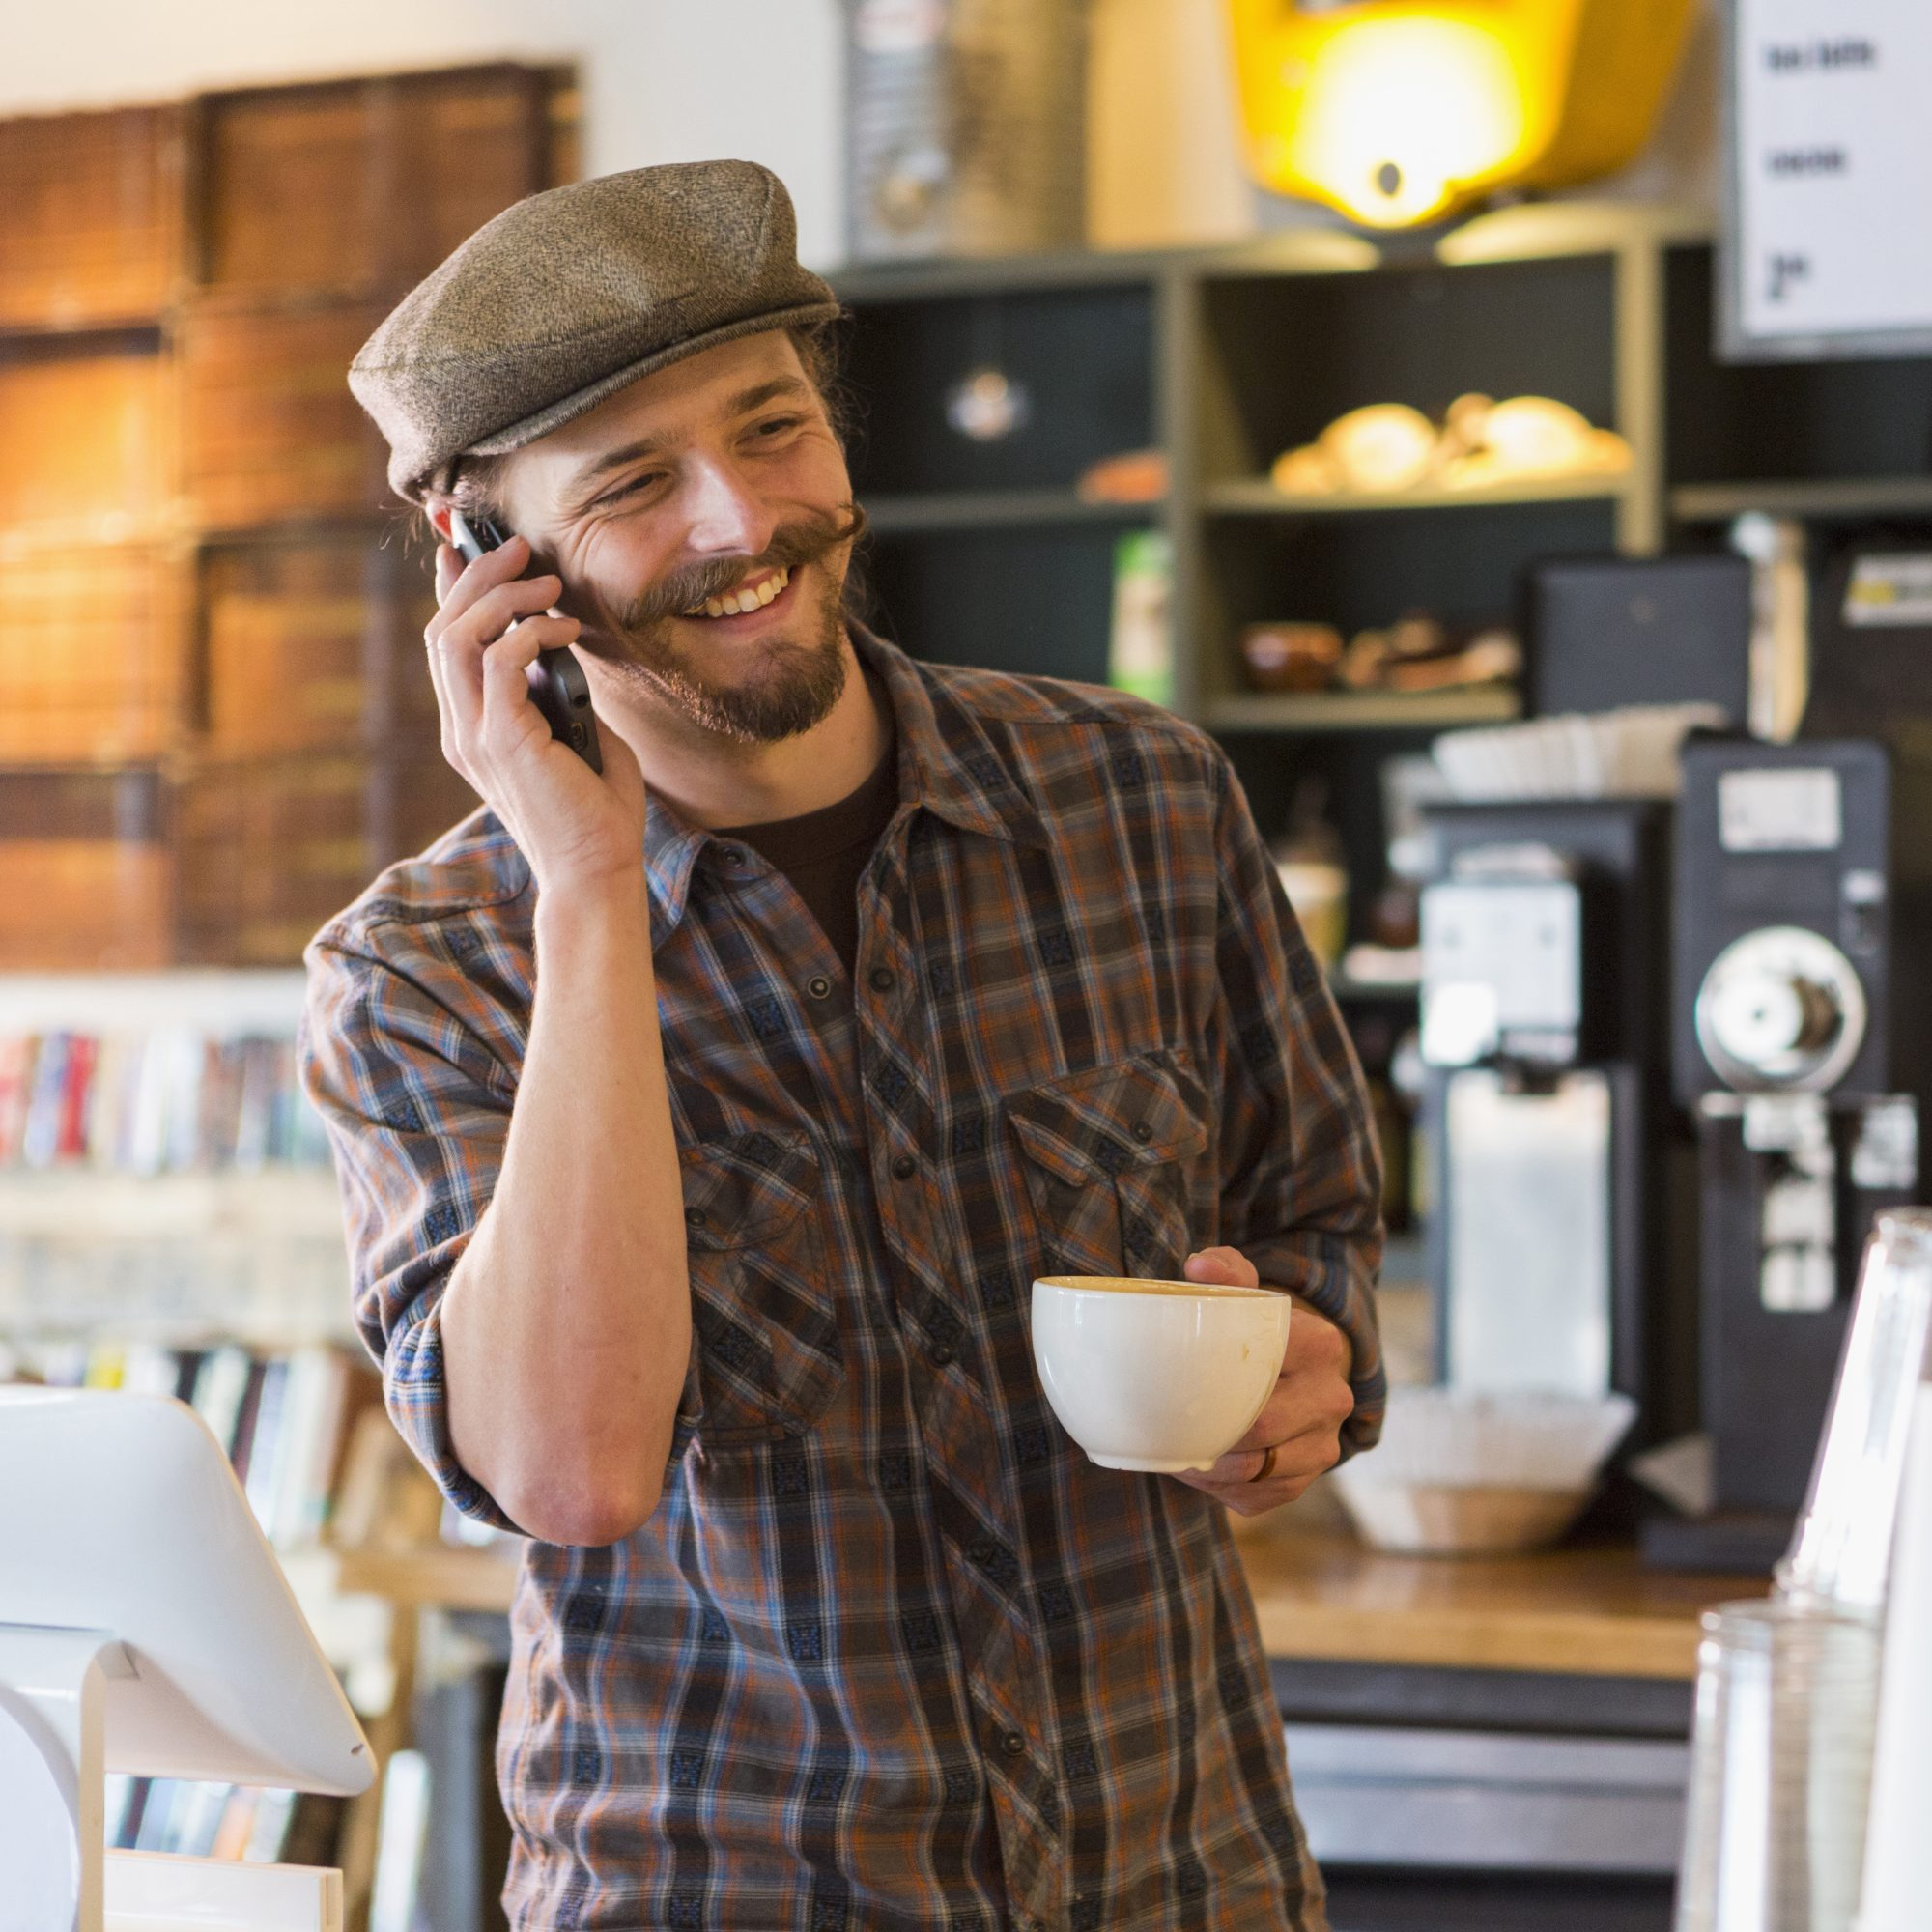 HIPSTER COFFEE SHOP NOISE FWX